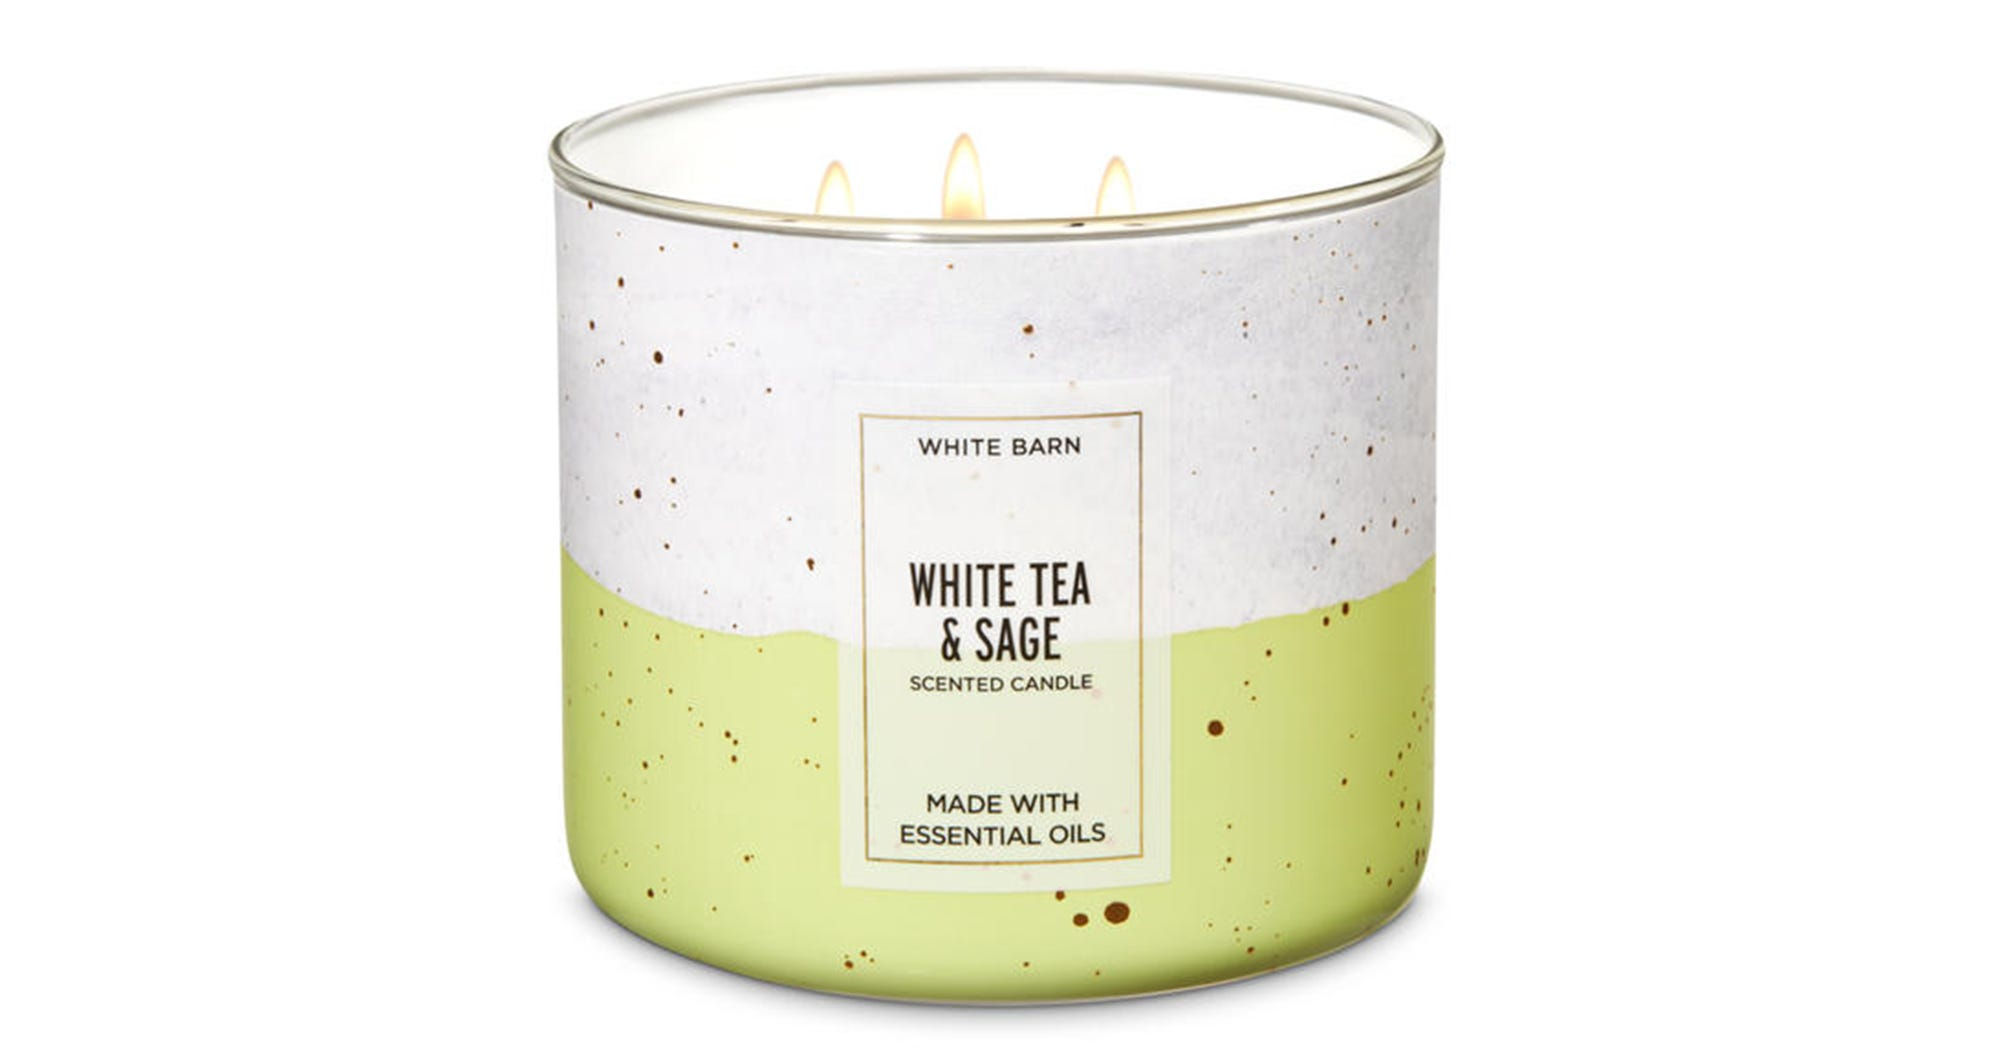 bath body works 3 wick candle 10 off sale 2019. Black Bedroom Furniture Sets. Home Design Ideas